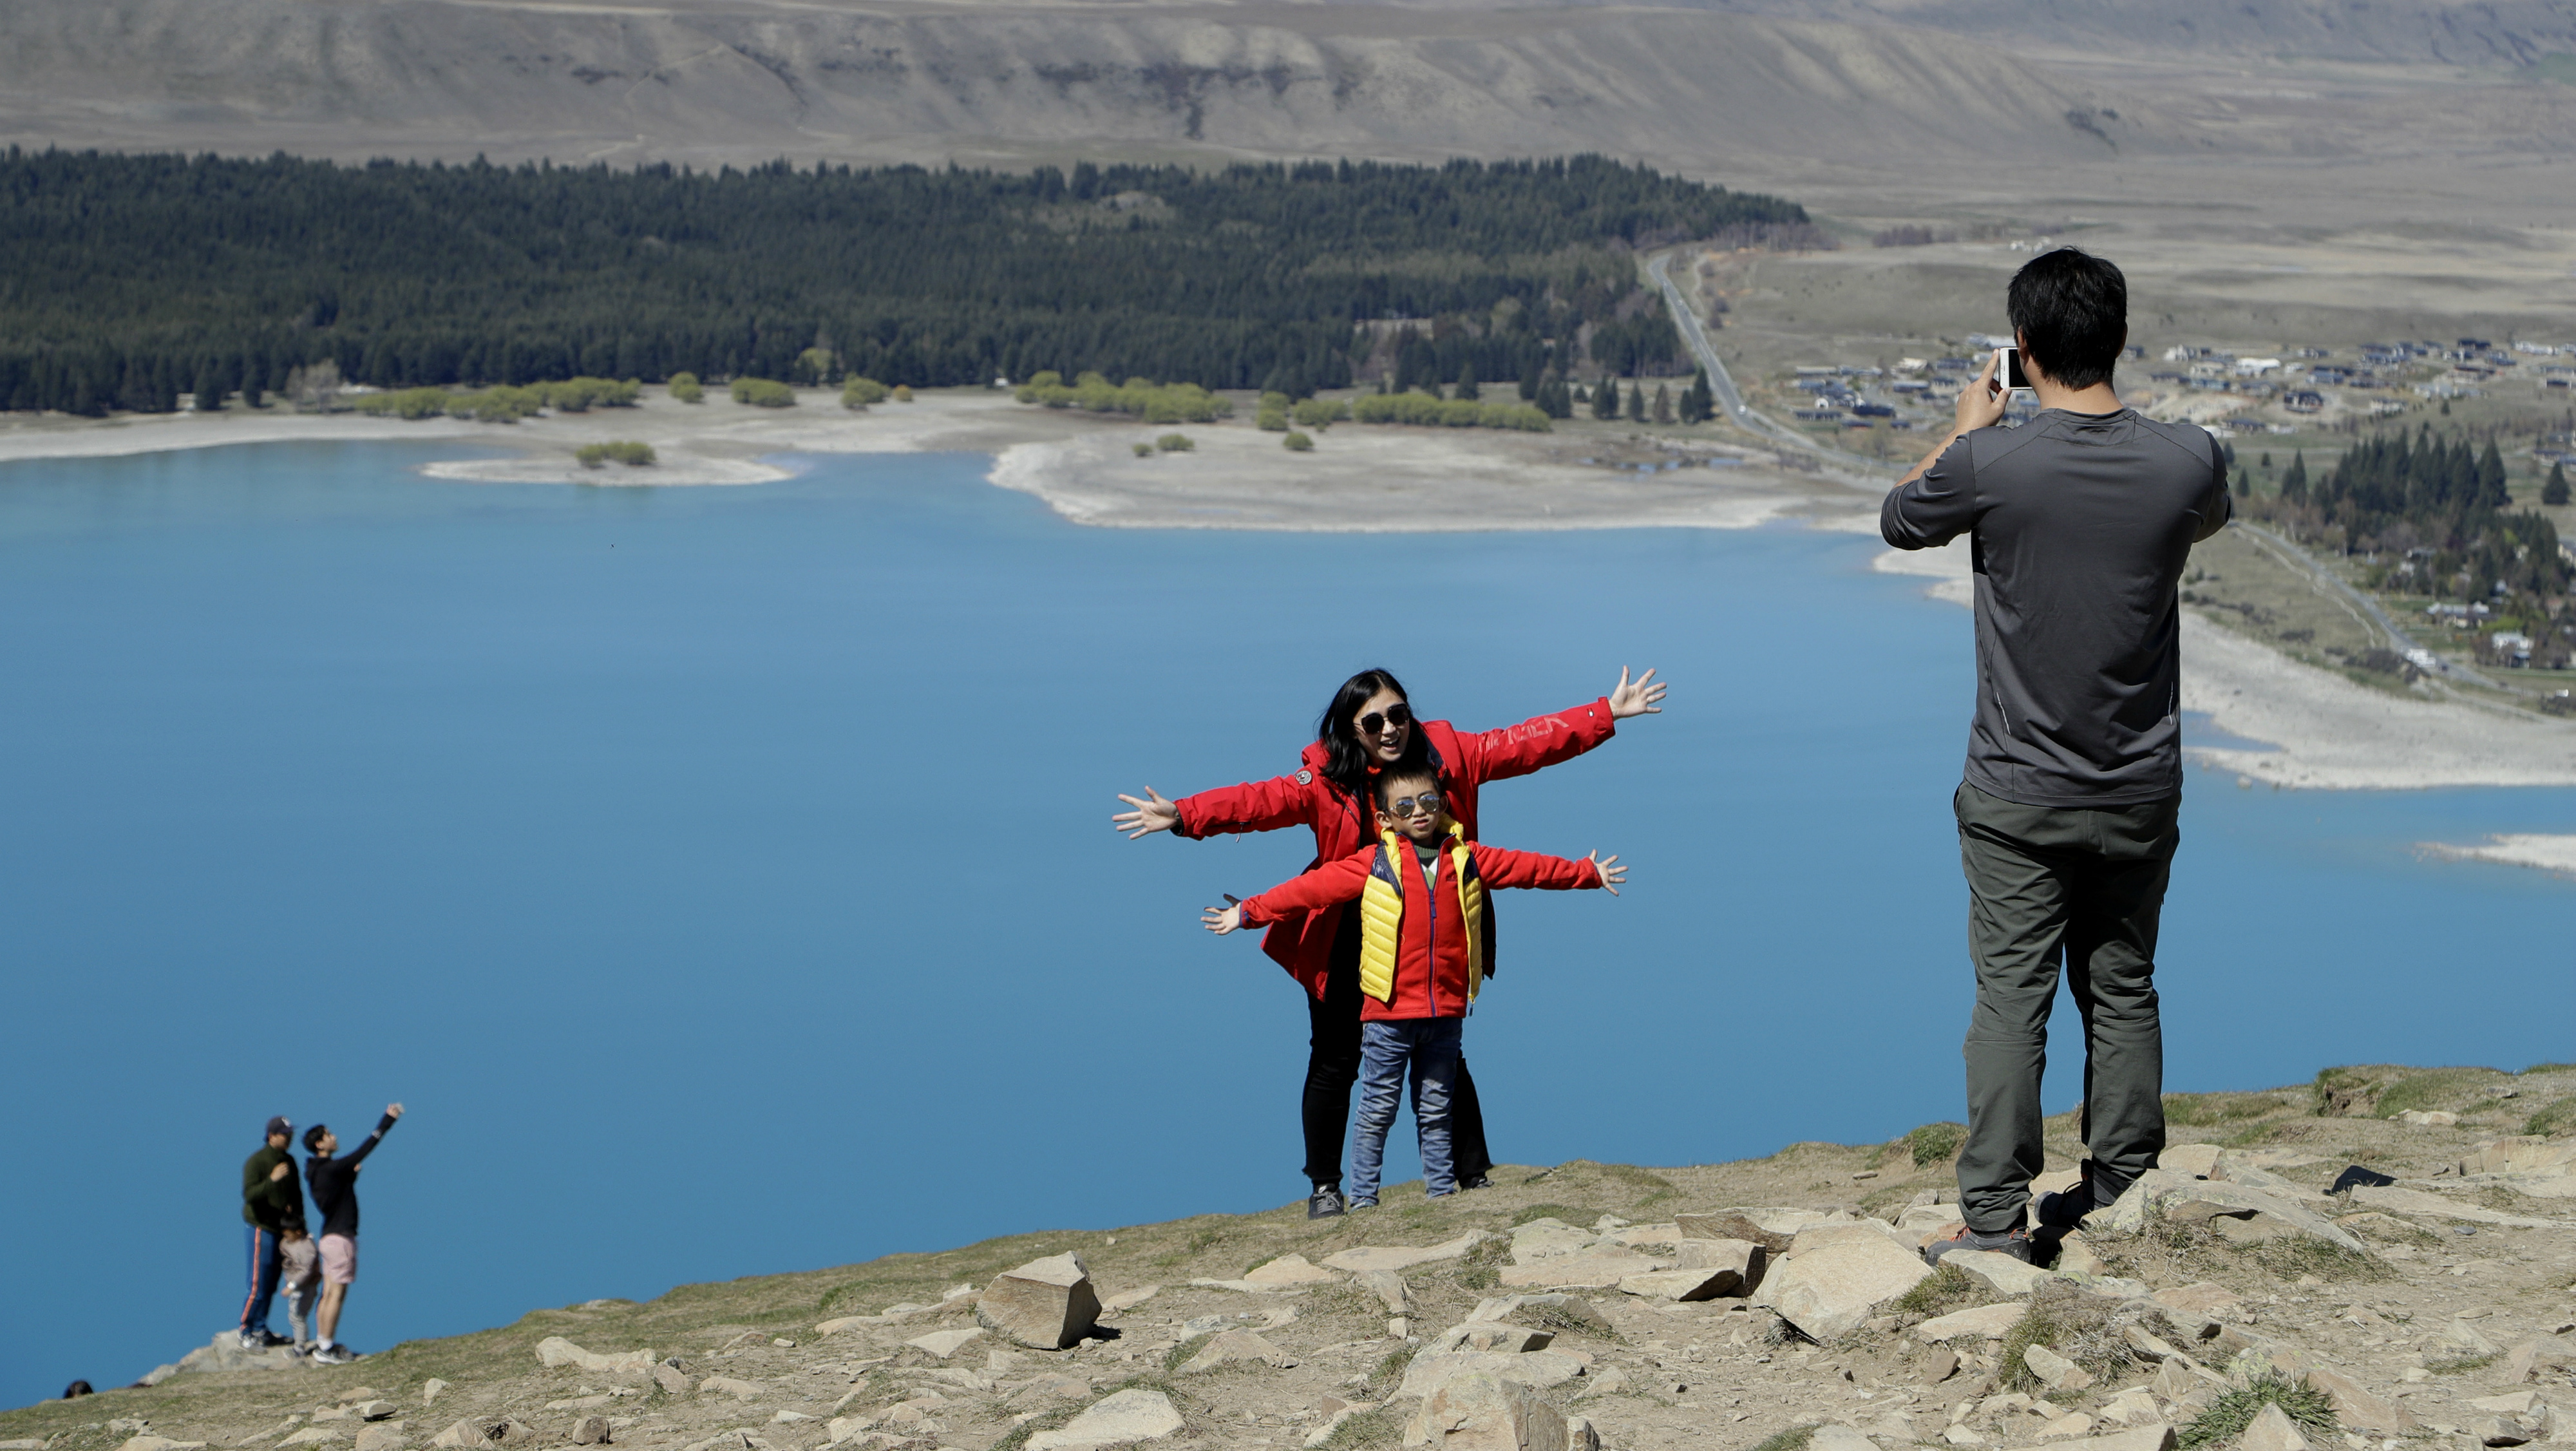 Tourists taking a picture at a lake in New Zealand.